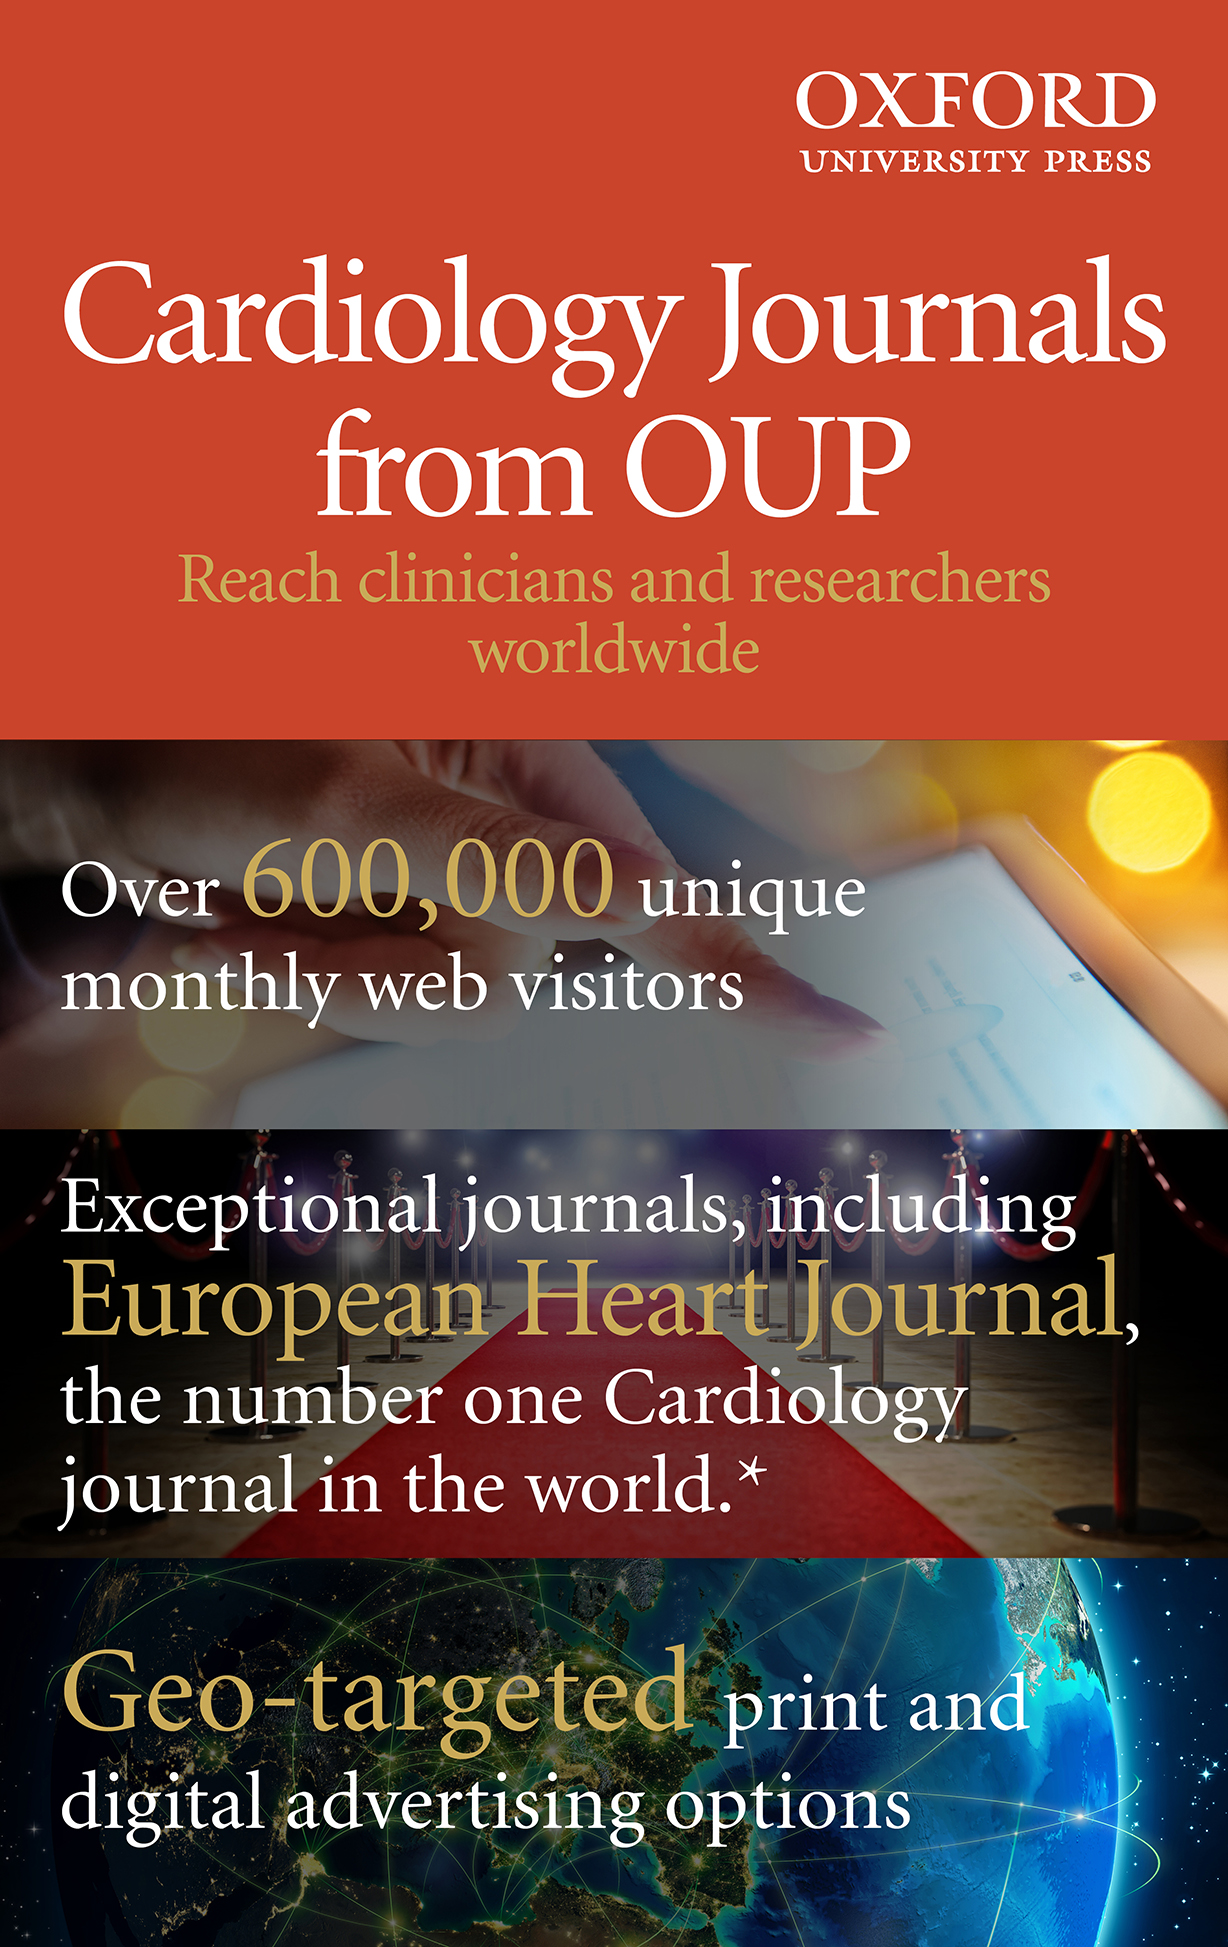 Cardiology - Oxford University Press